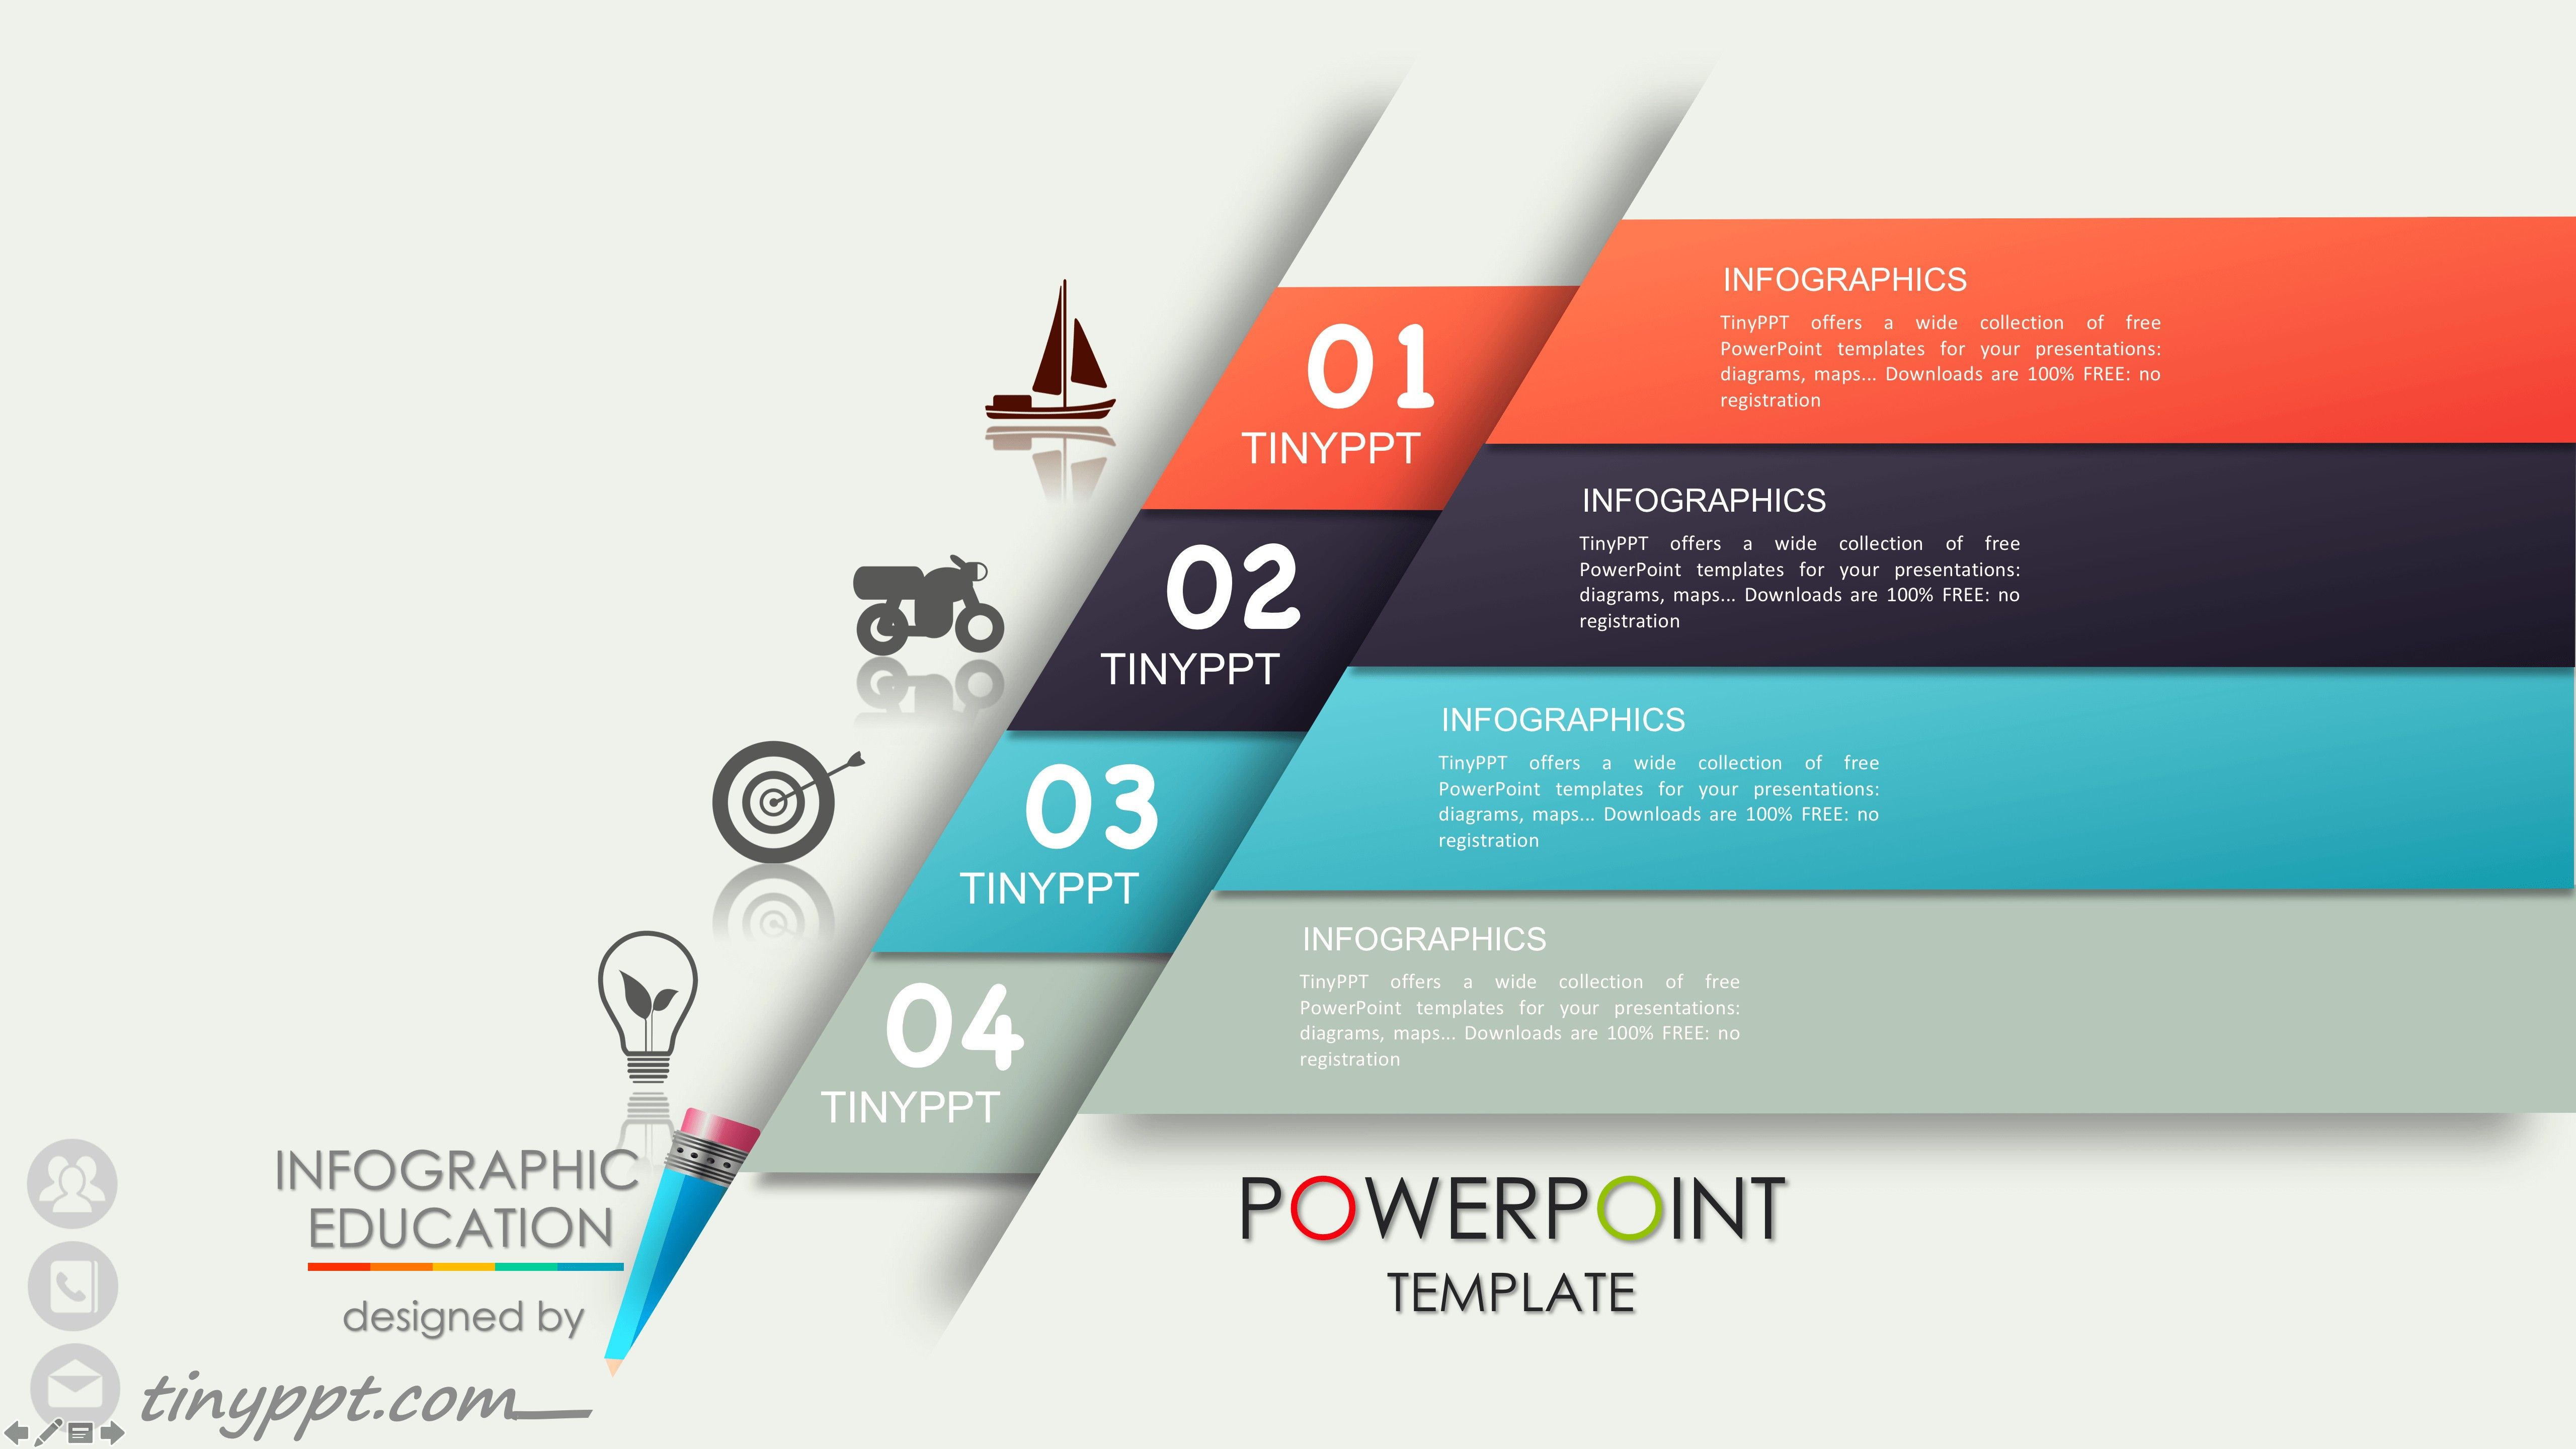 Free Download Templates For Powerpoint 2007 Business New Intended For Powerpoint 2007 Template Free Download